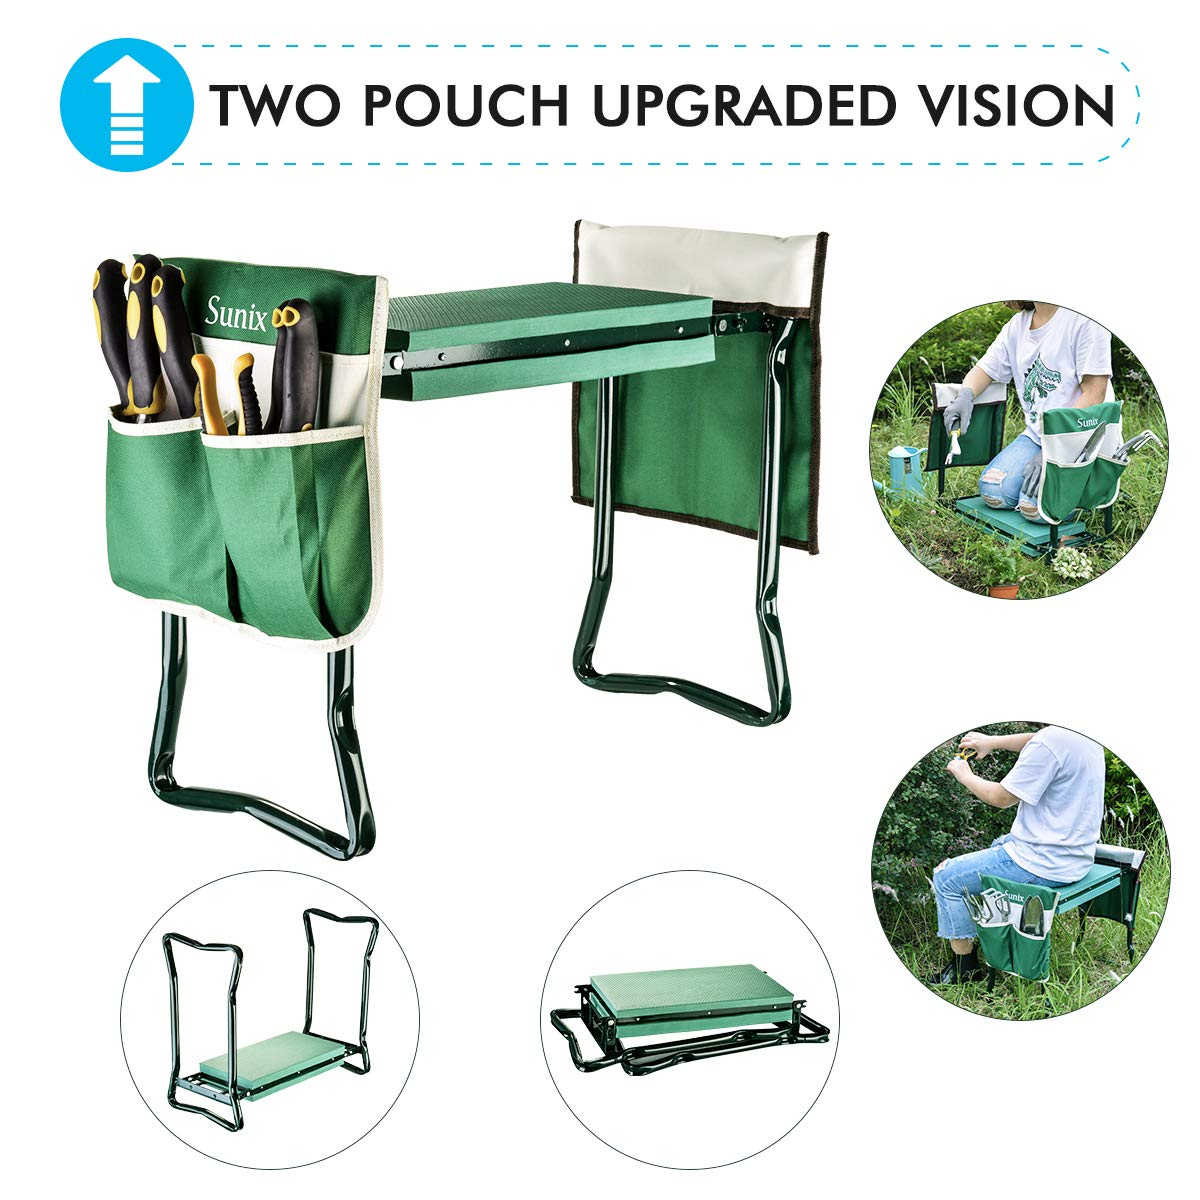 Garden Kneeler And Seat With 2 Bonus Tool Pouches – Portable Garden Bench EVA Foam Pad With Kneeling Pad for Gardening – Sturdy, Lightweight And Practical – Protect Knees And Clothes When Gardening